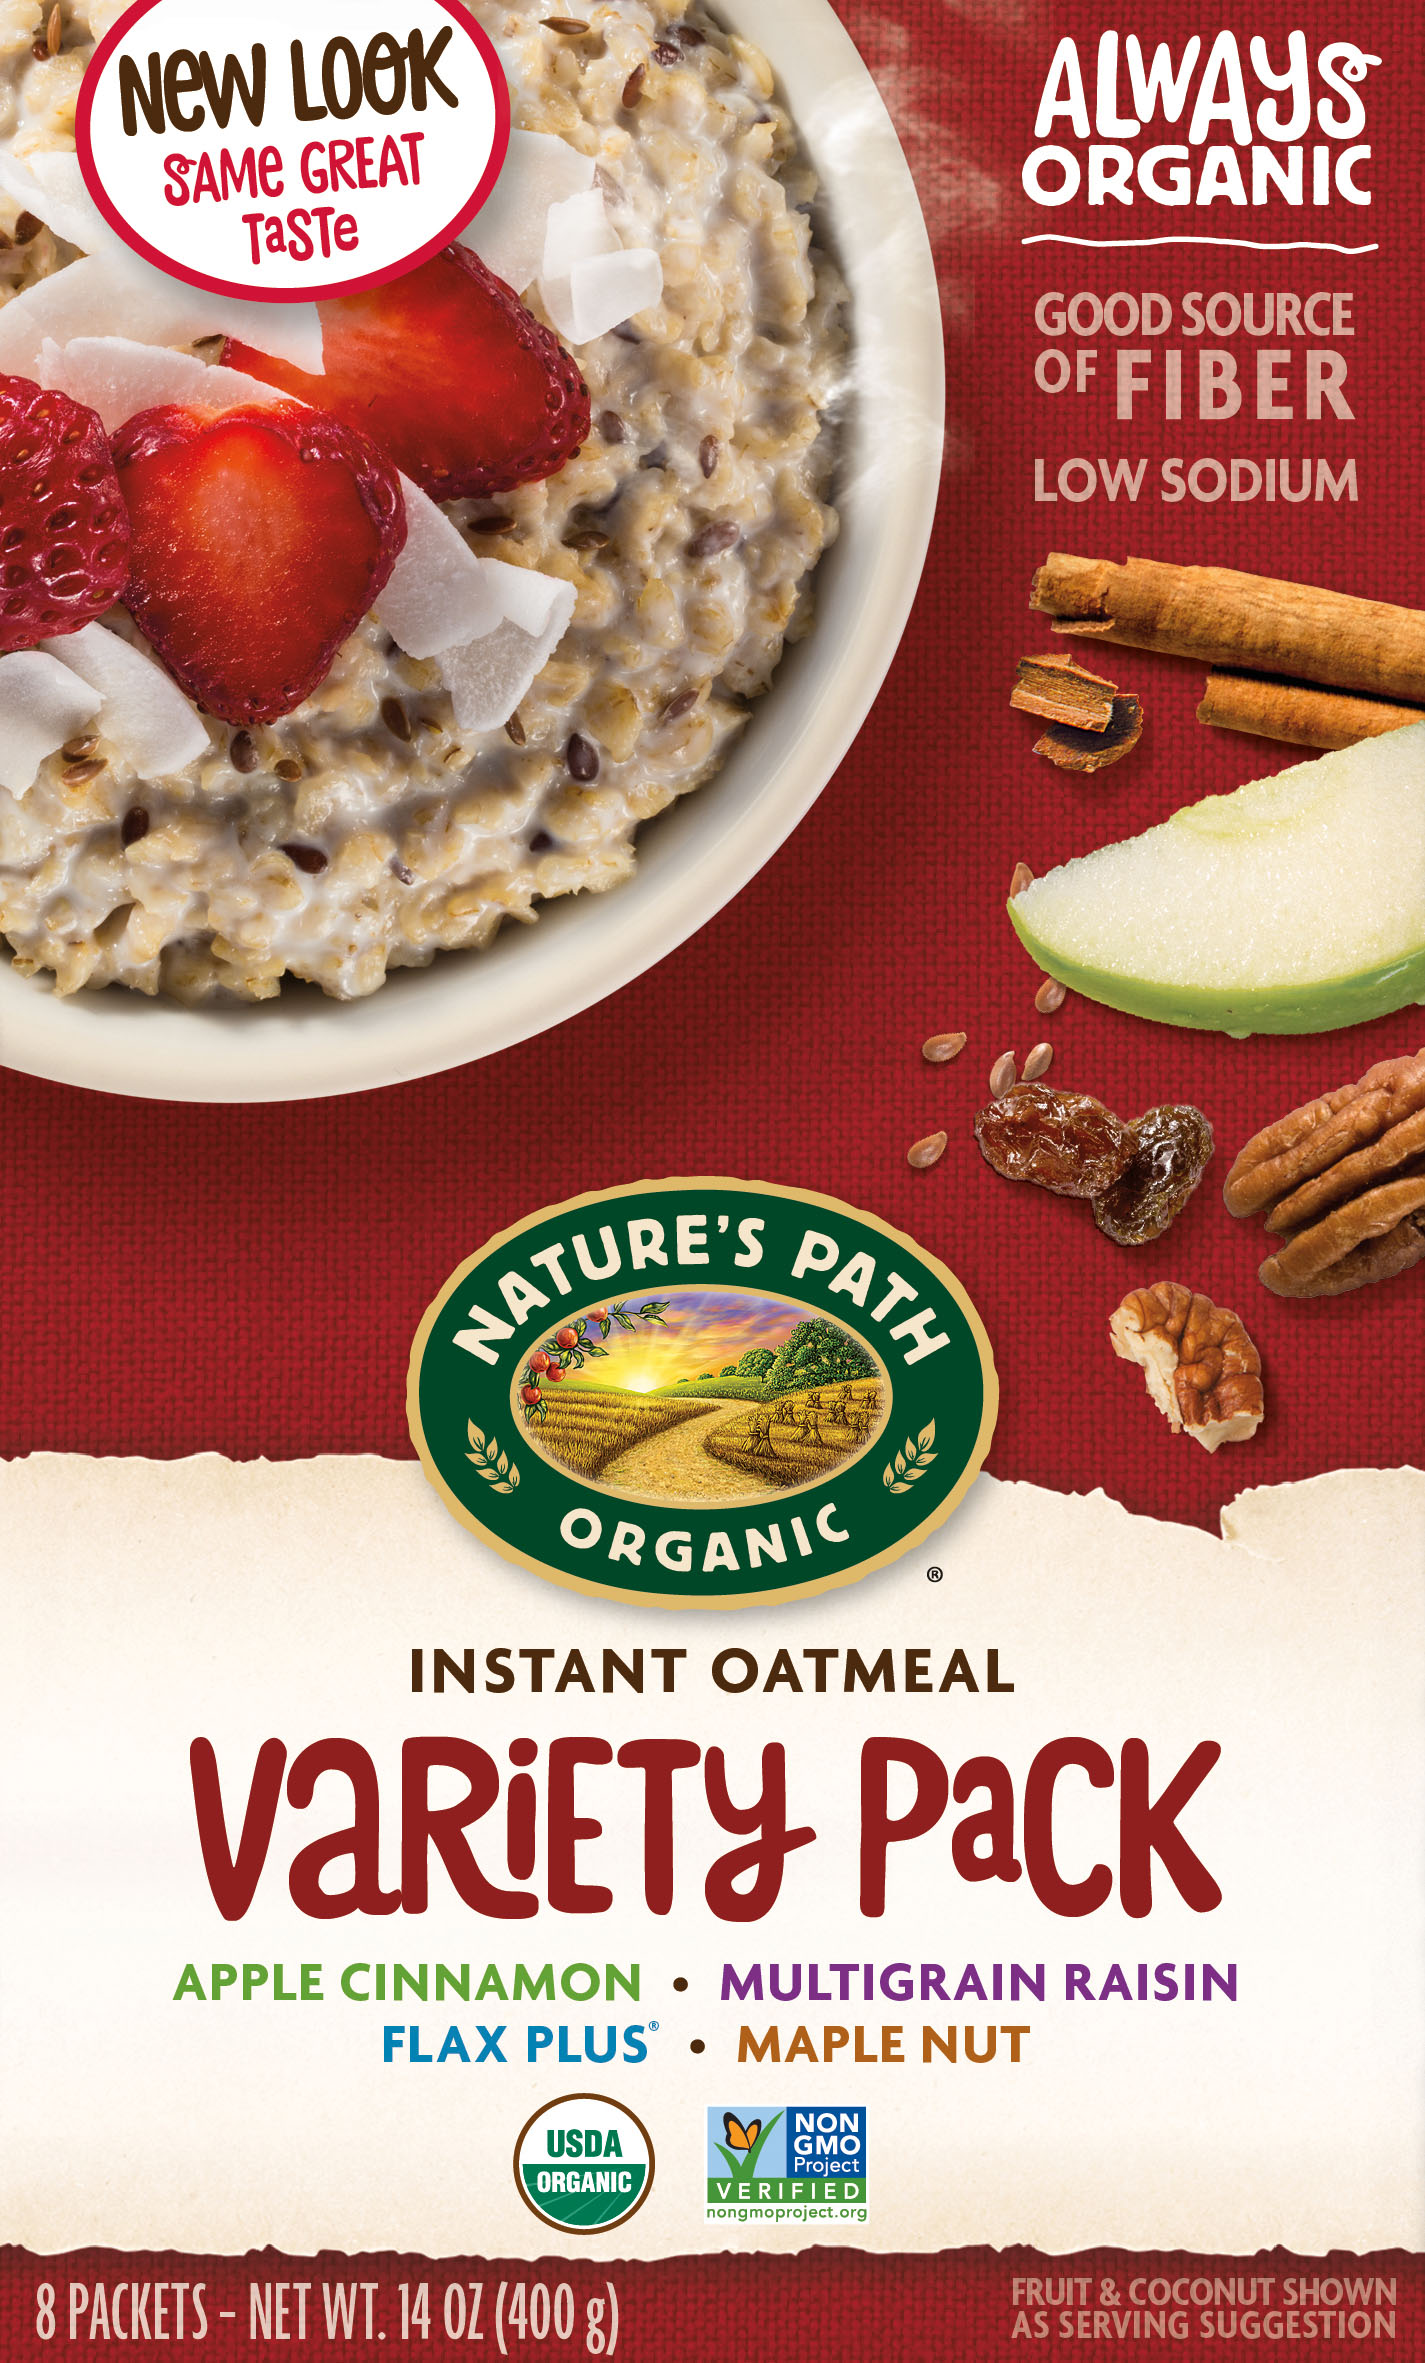 Nature's Path Organic Hot Oatmeal, Variety Pack, 1.75 Oz, 8 Ct